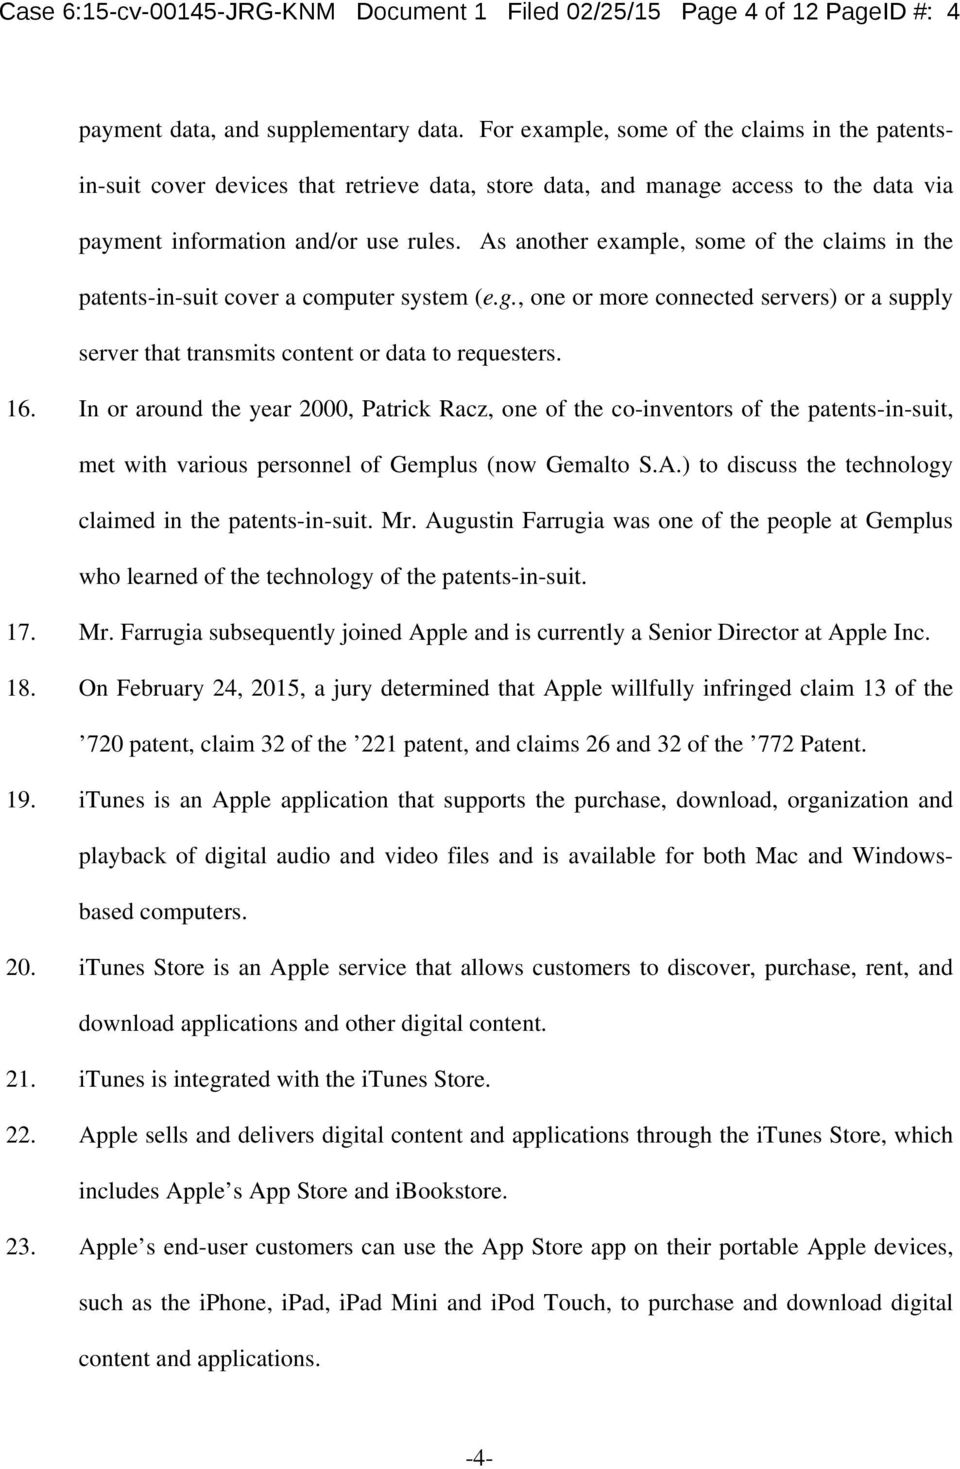 As another example, some of the claims in the patents-in-suit cover a computer system (e.g., one or more connected servers) or a supply server that transmits content or data to requesters. 16.